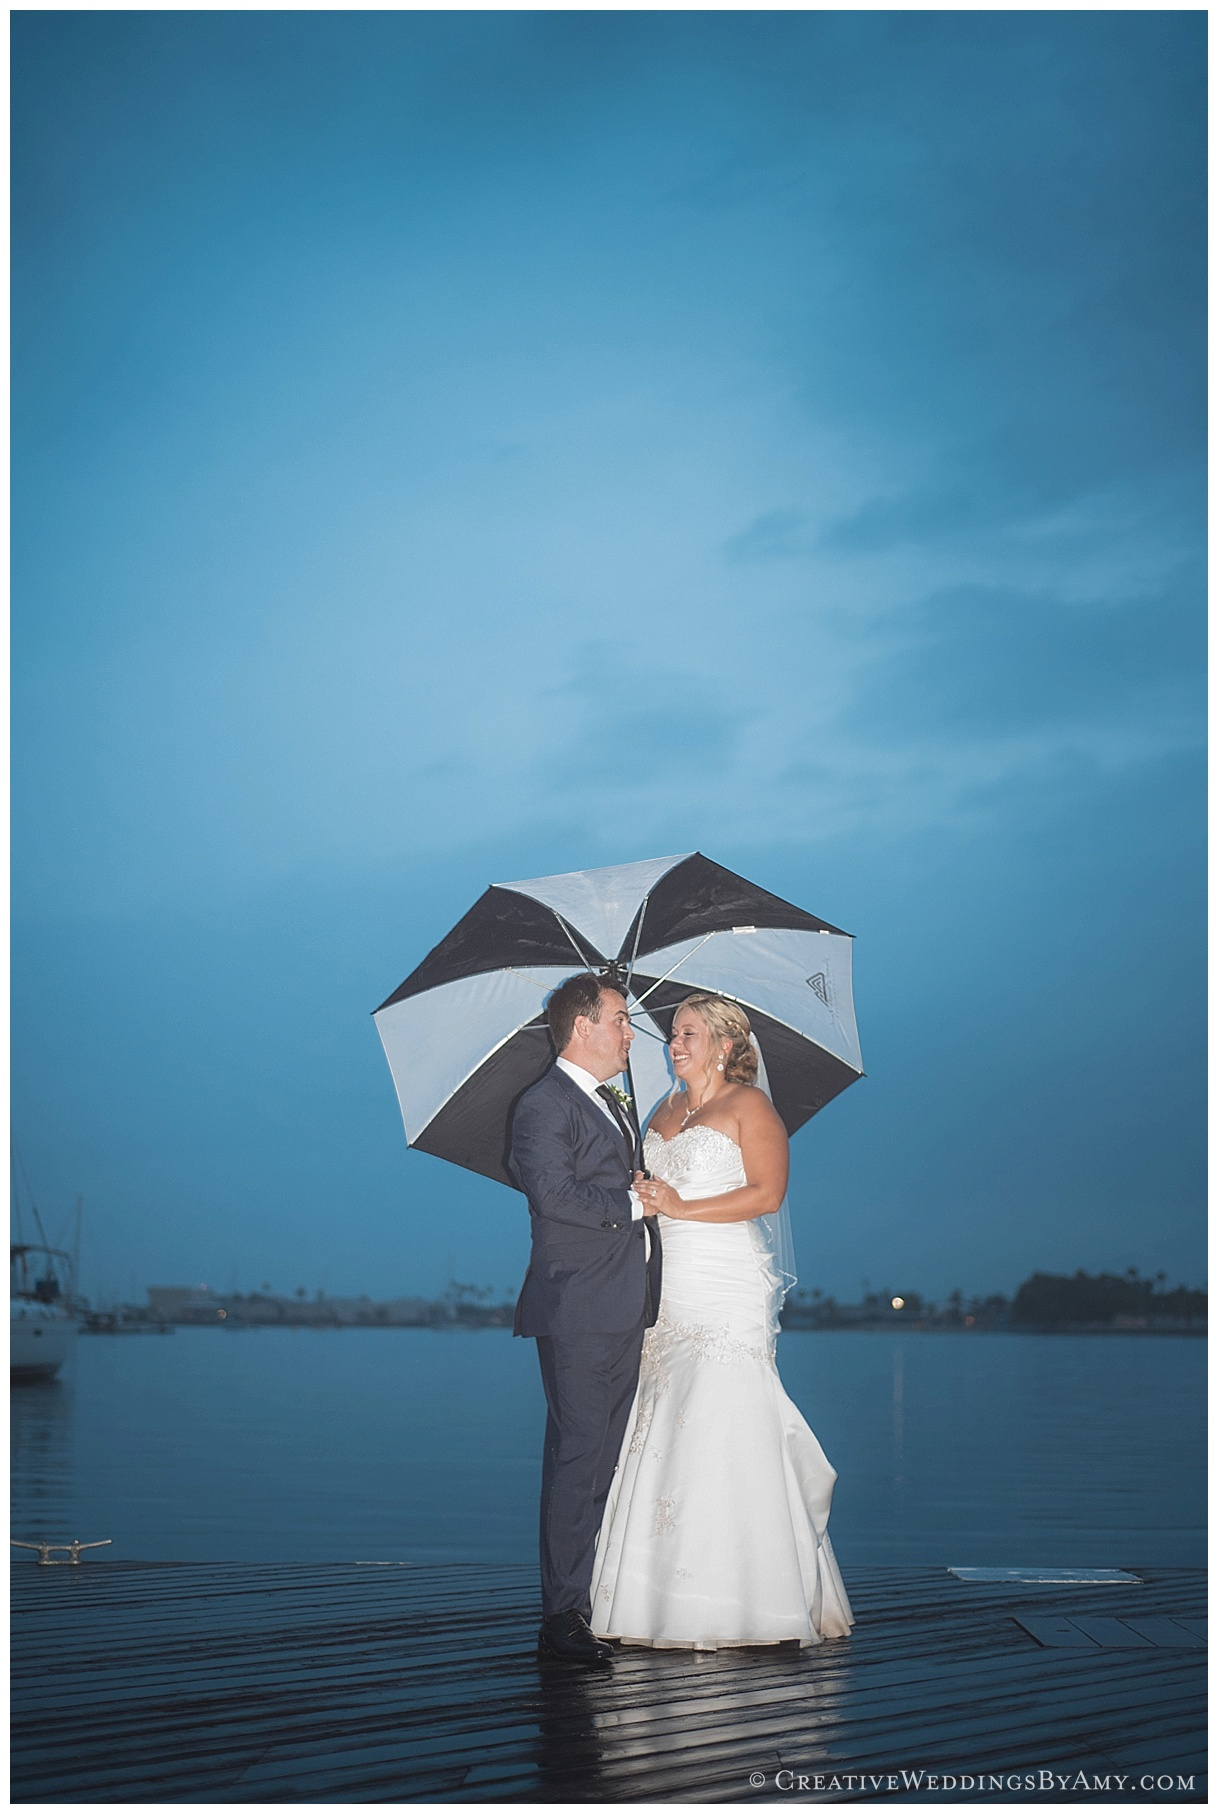 Evening dark sky, coronado wedding